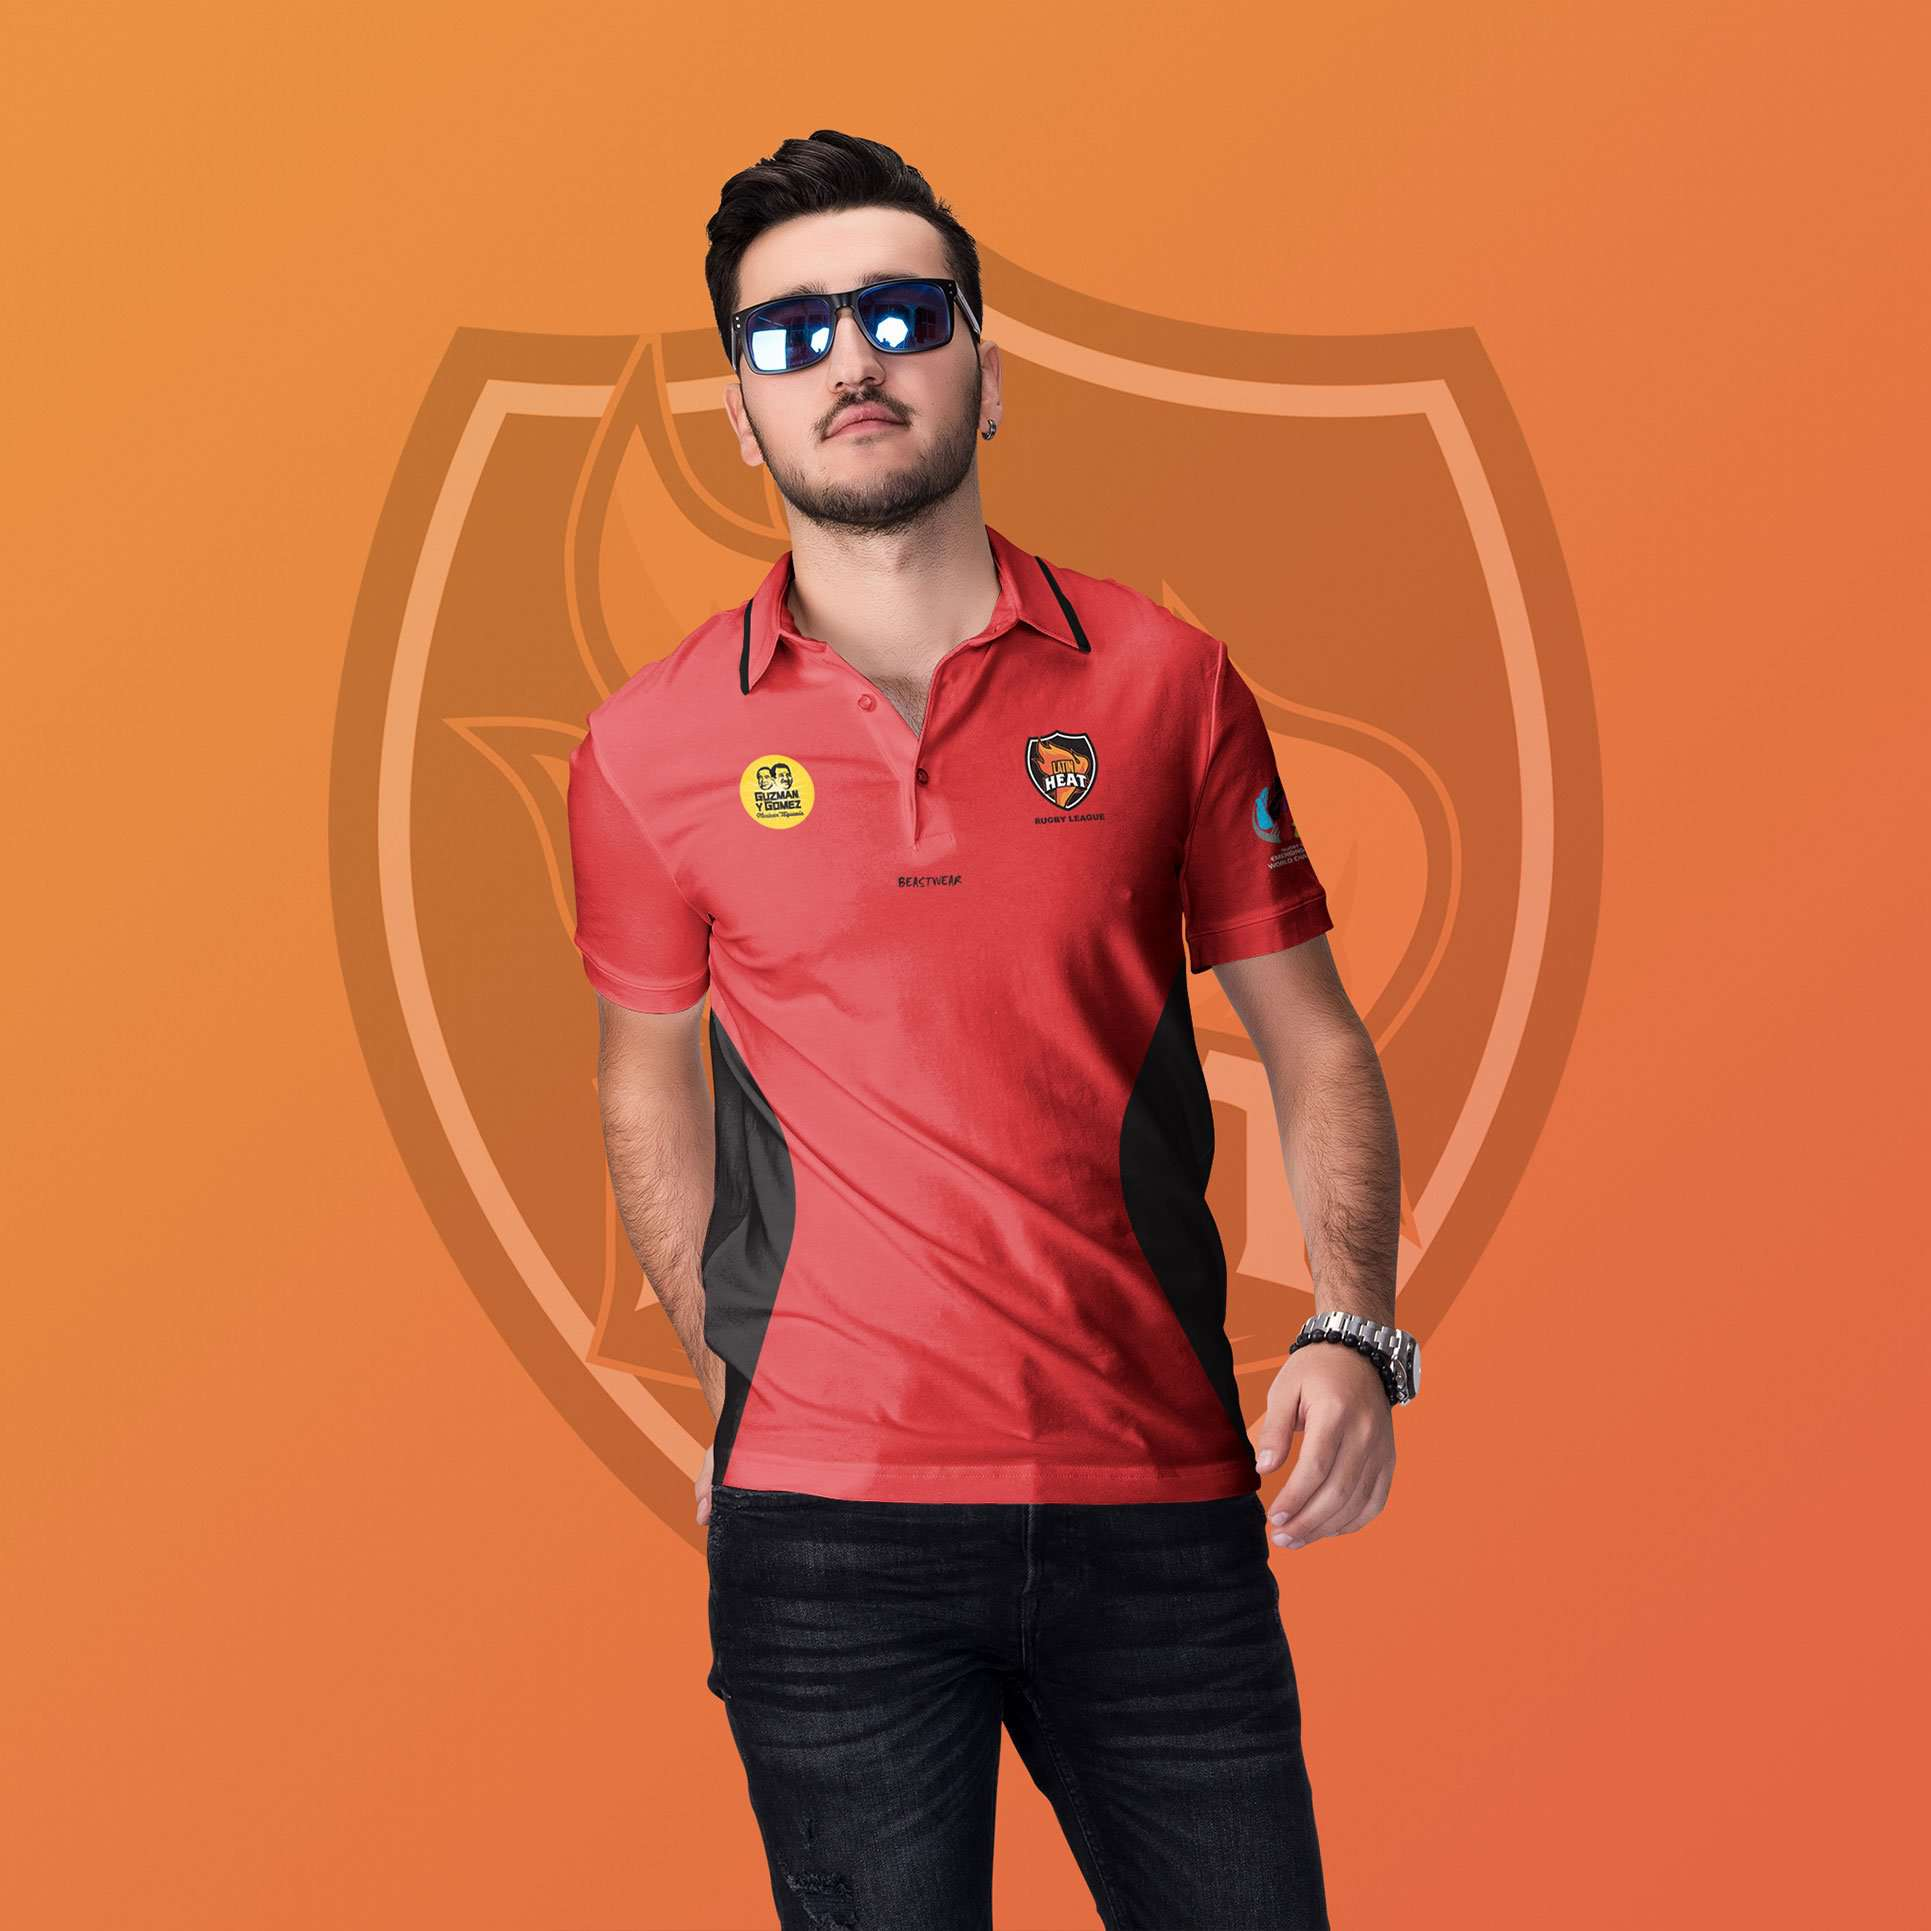 Polo Shirt Latin Heat Rugby League